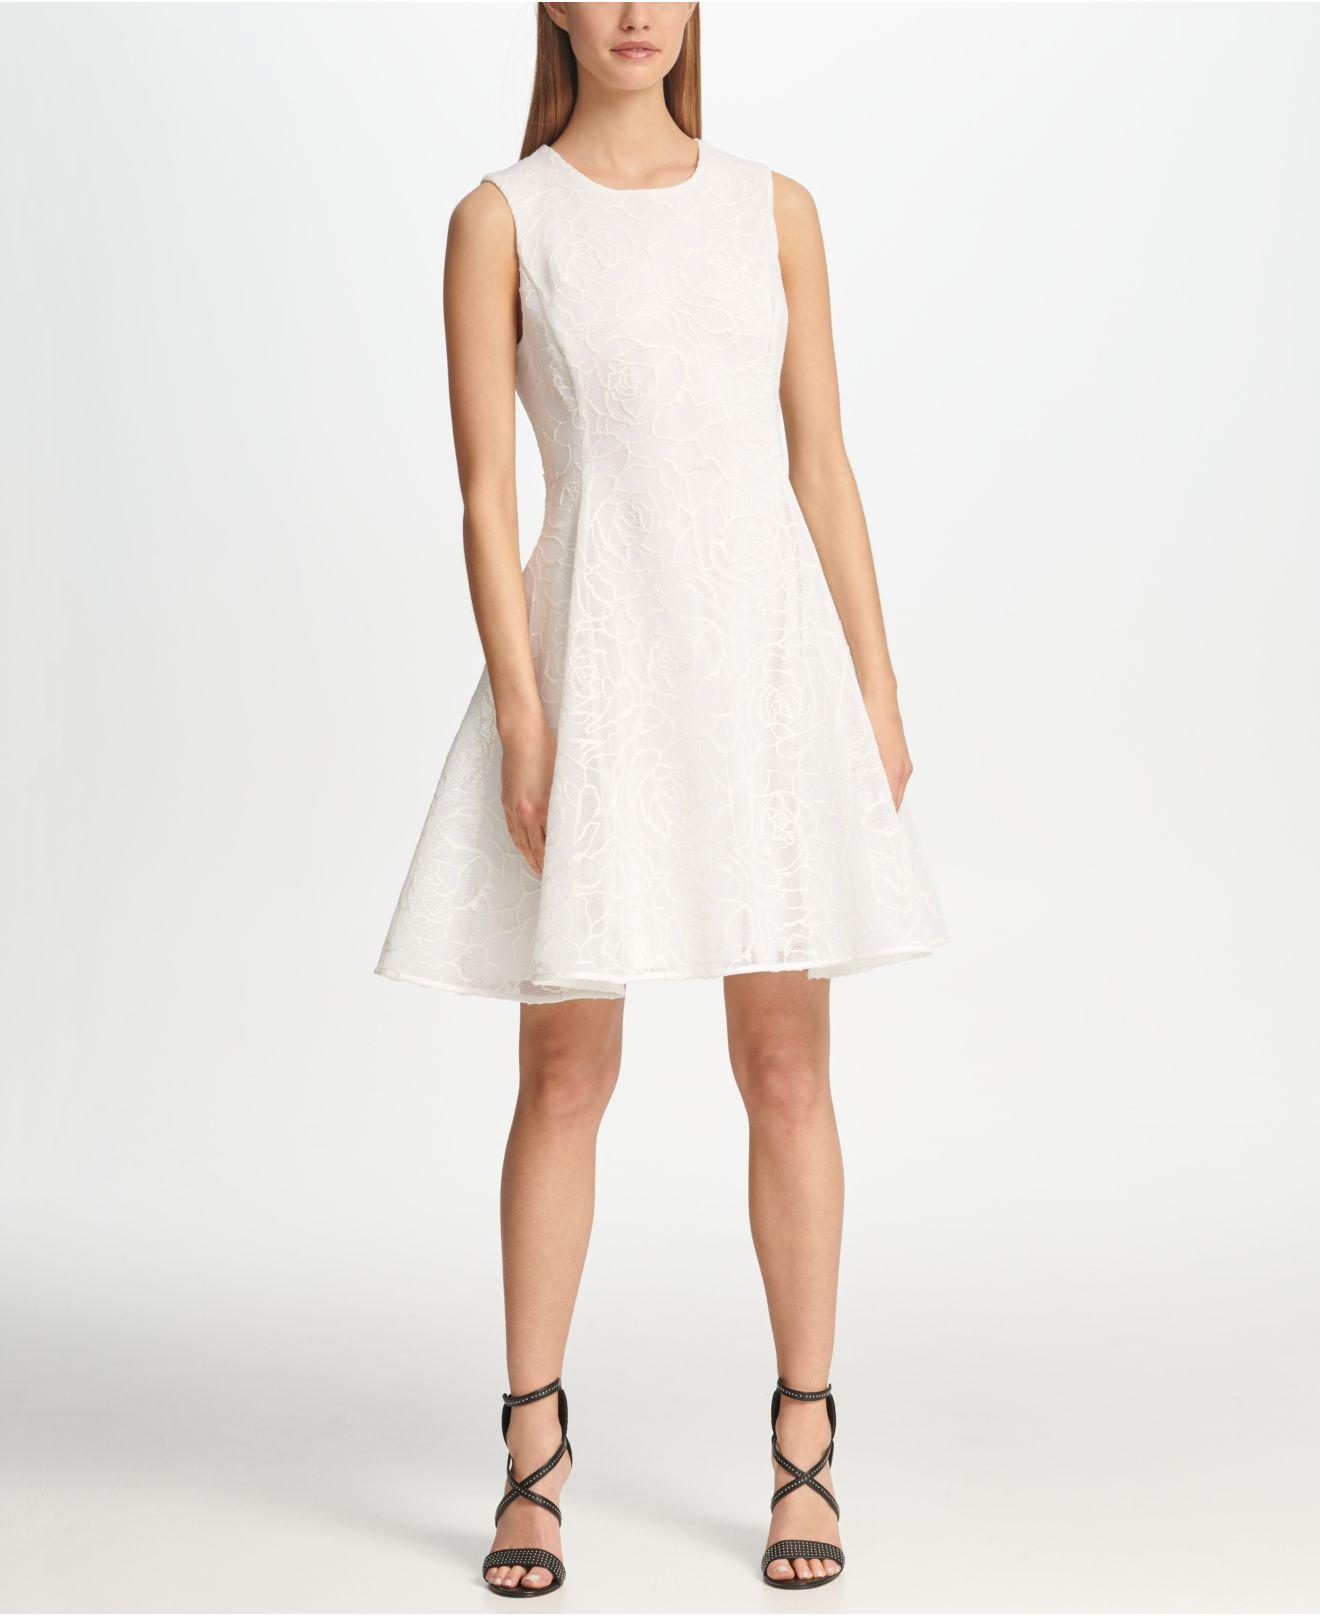 4336f43533 DKNY Textured Mesh Fit   Flare Dress in White - Lyst